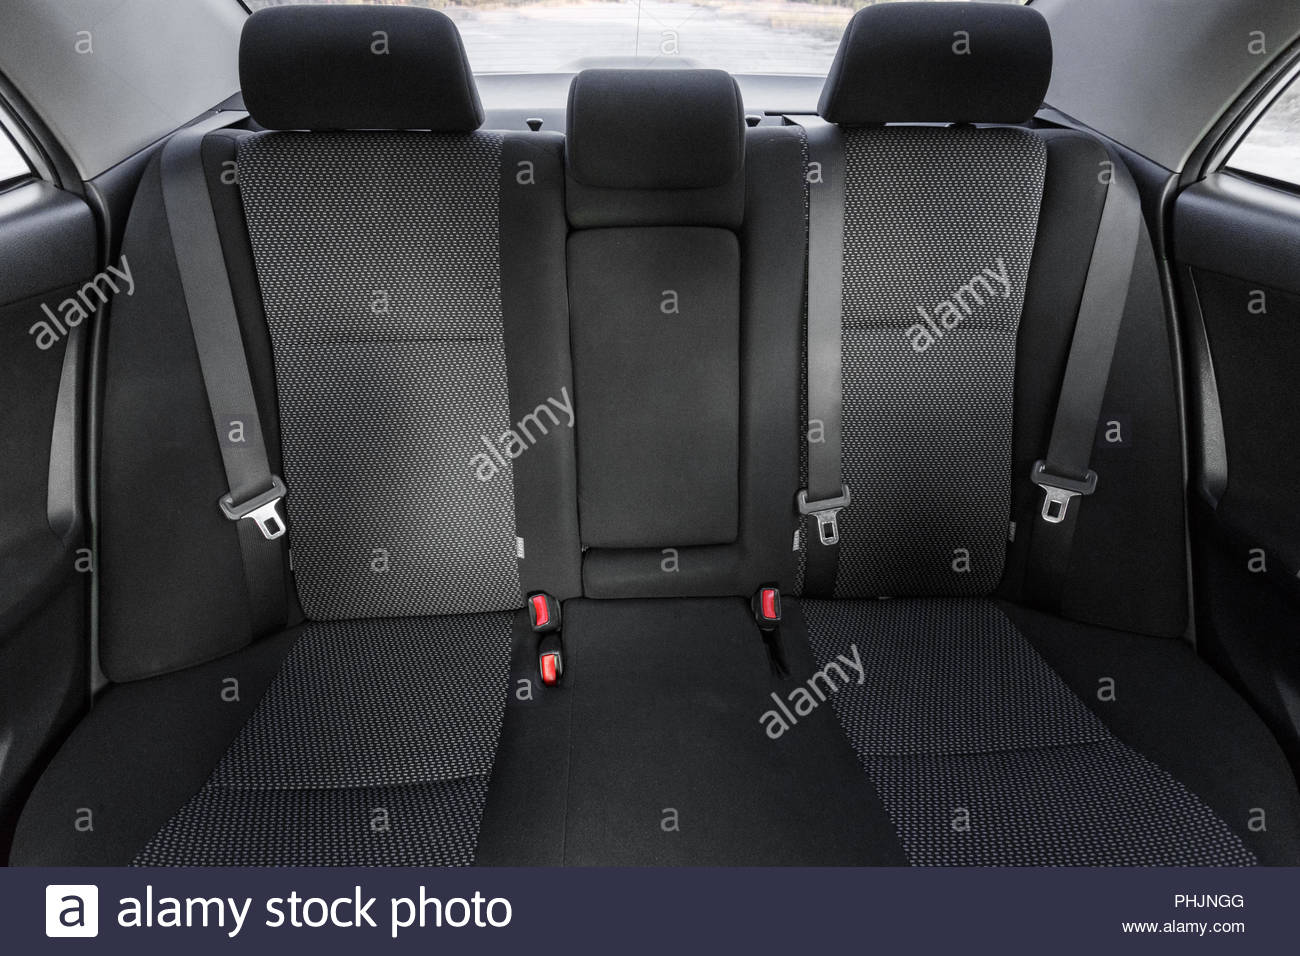 Car Back Seats Stock Photos Images Alamy 1955 Ford Seat Belts Interior Part Of Close Image